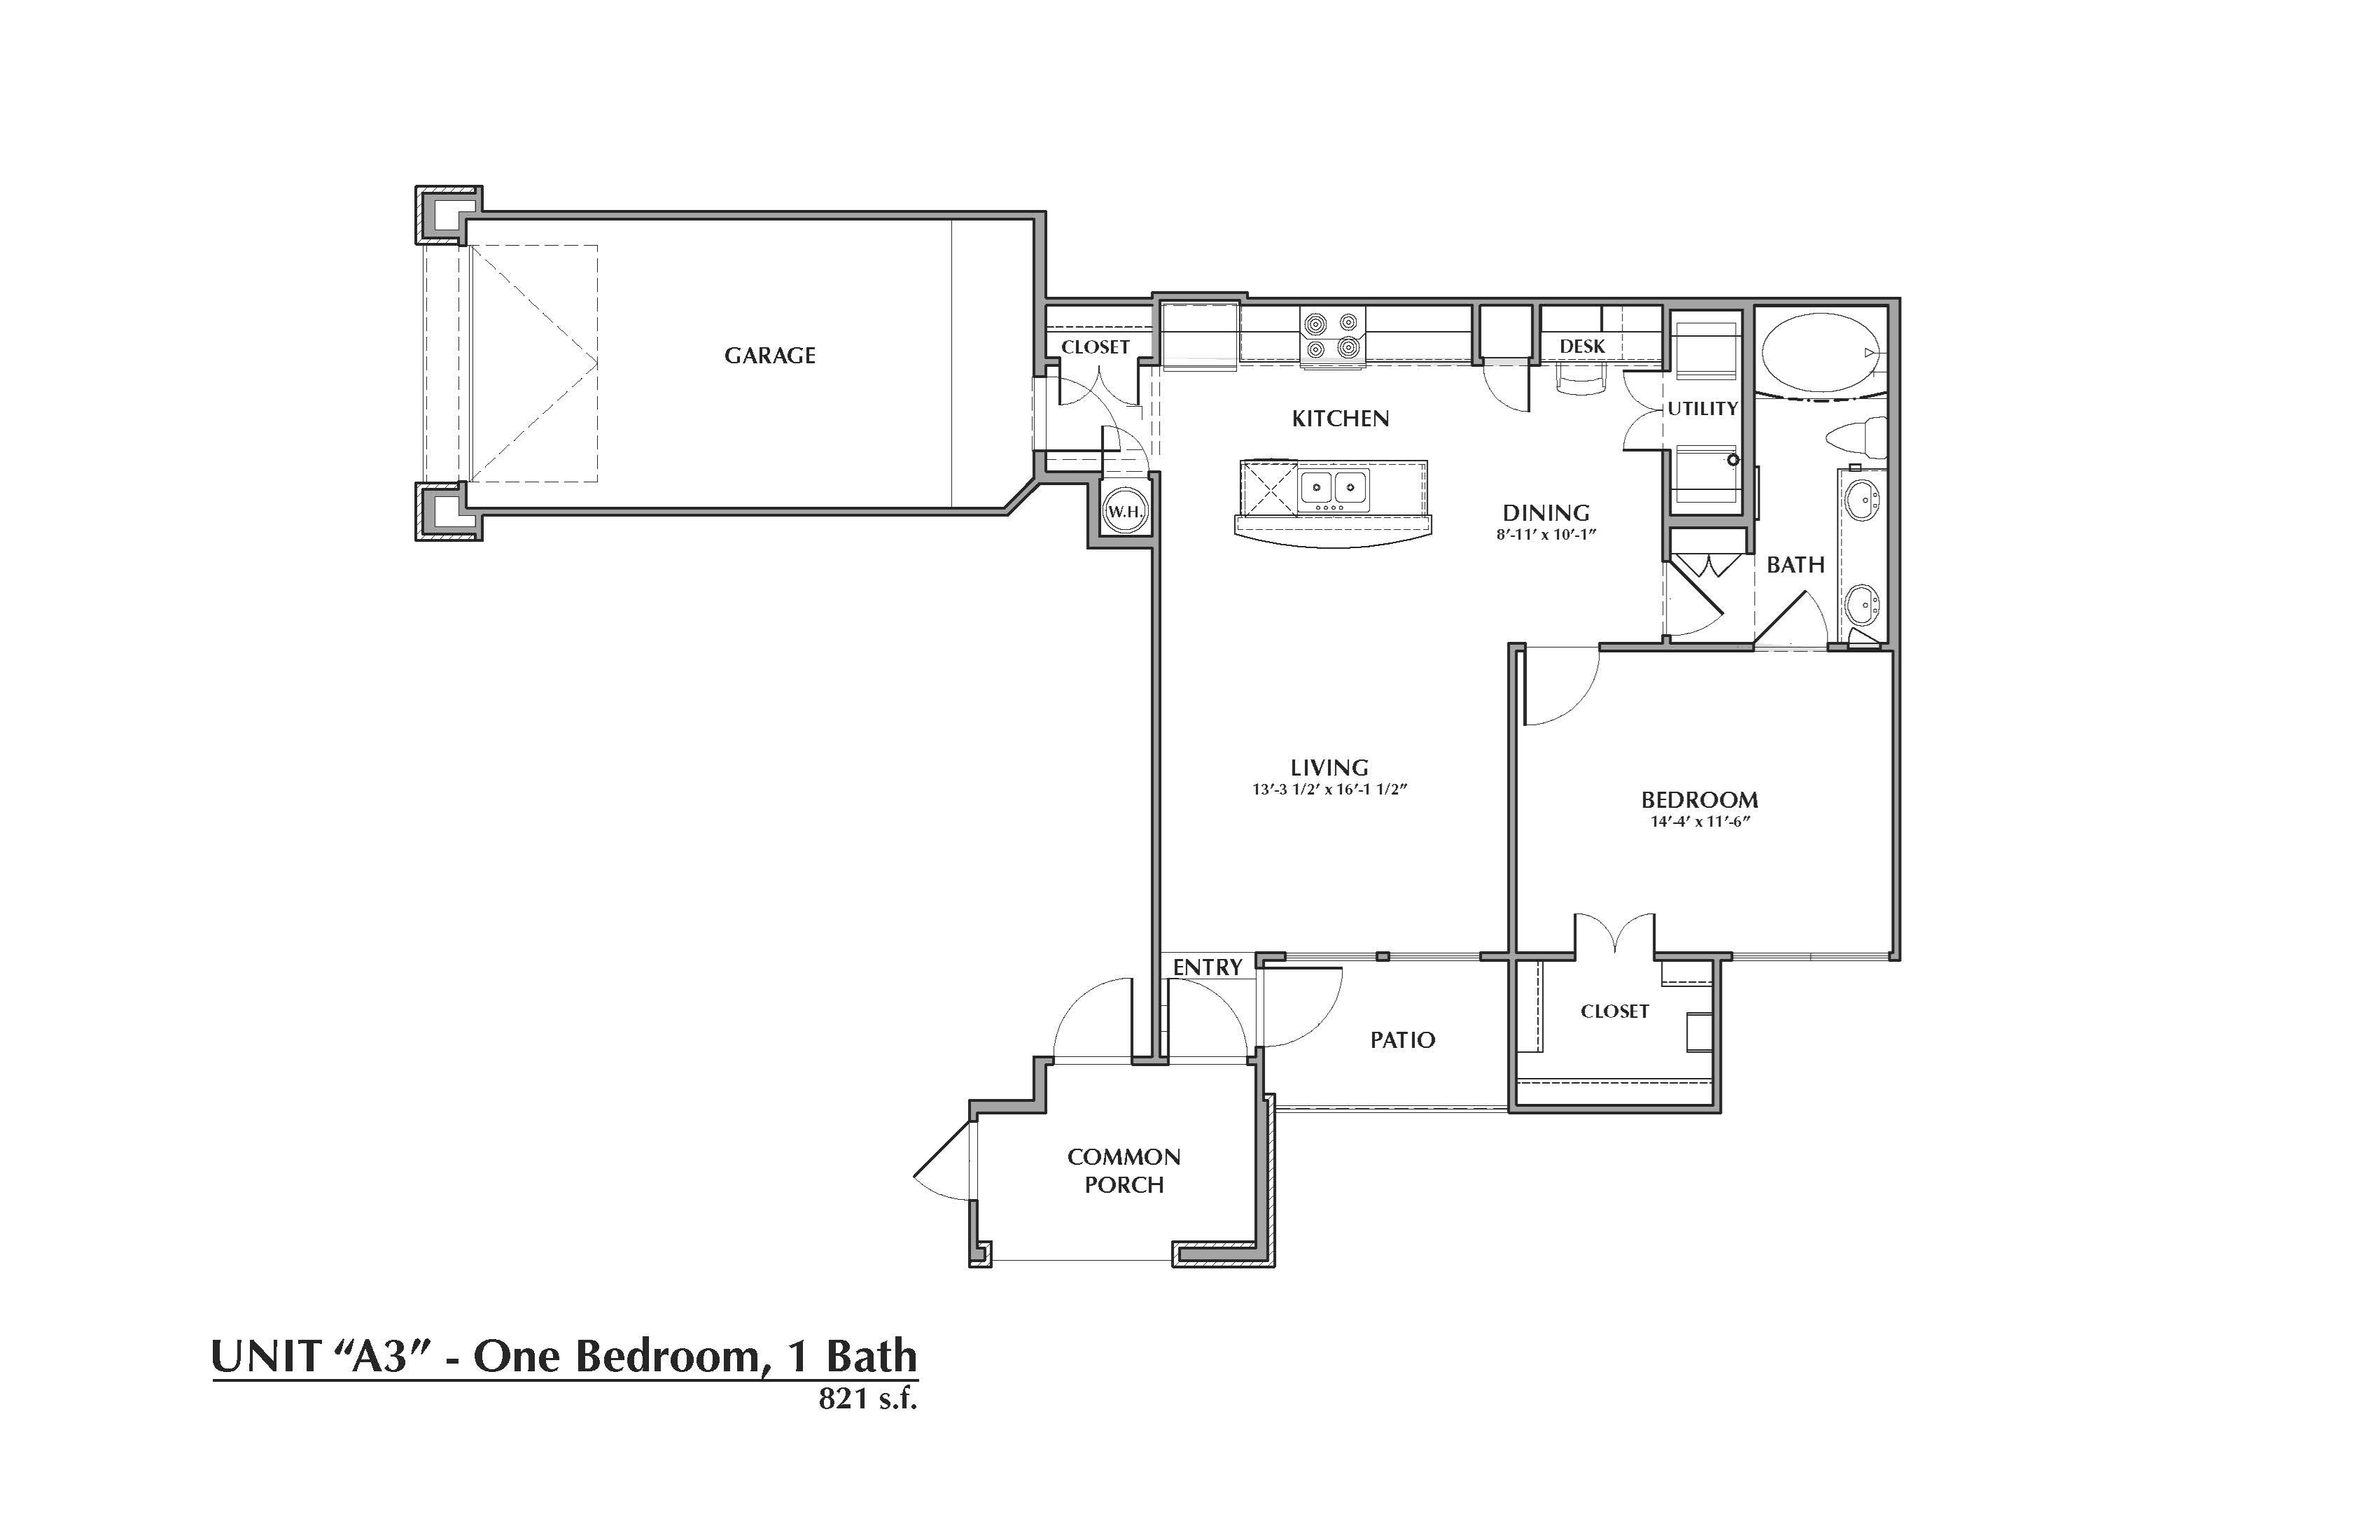 A3-Areca, 1x1 821sf (with attached garage) Floor Plan 3